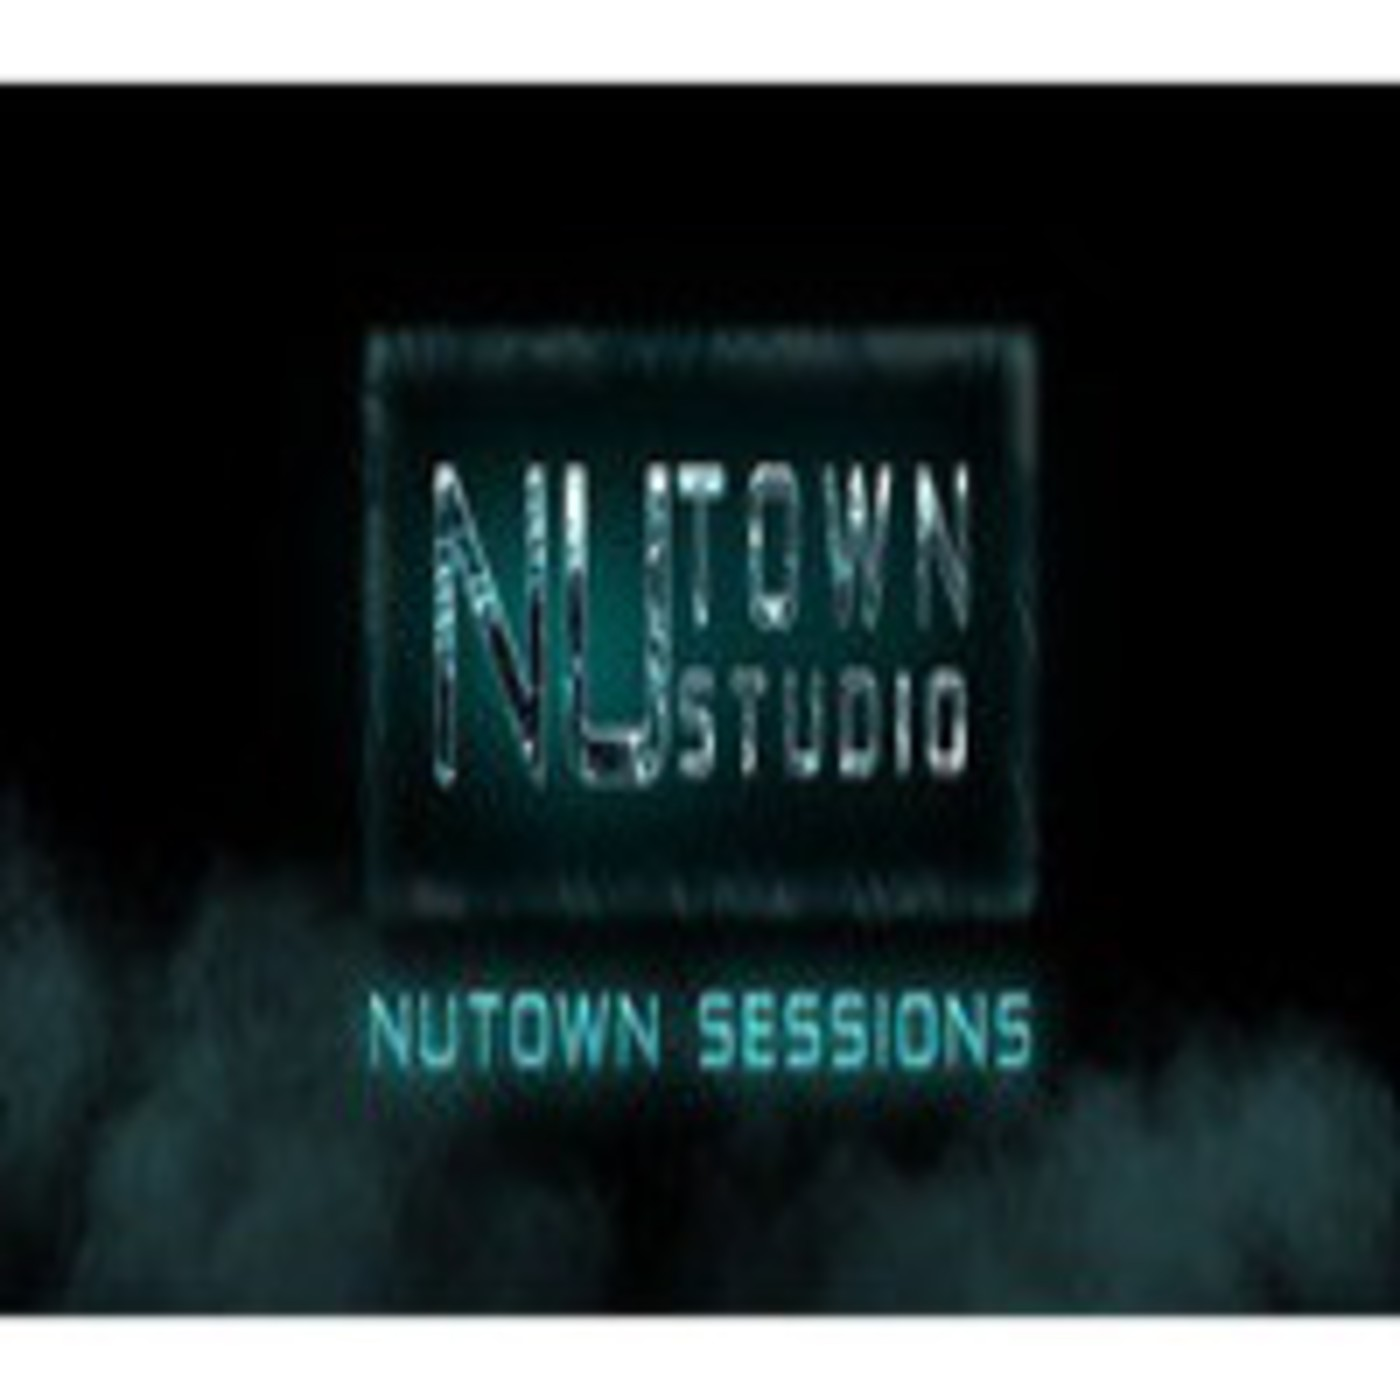 <![CDATA[Podcast Nutown TV]]>